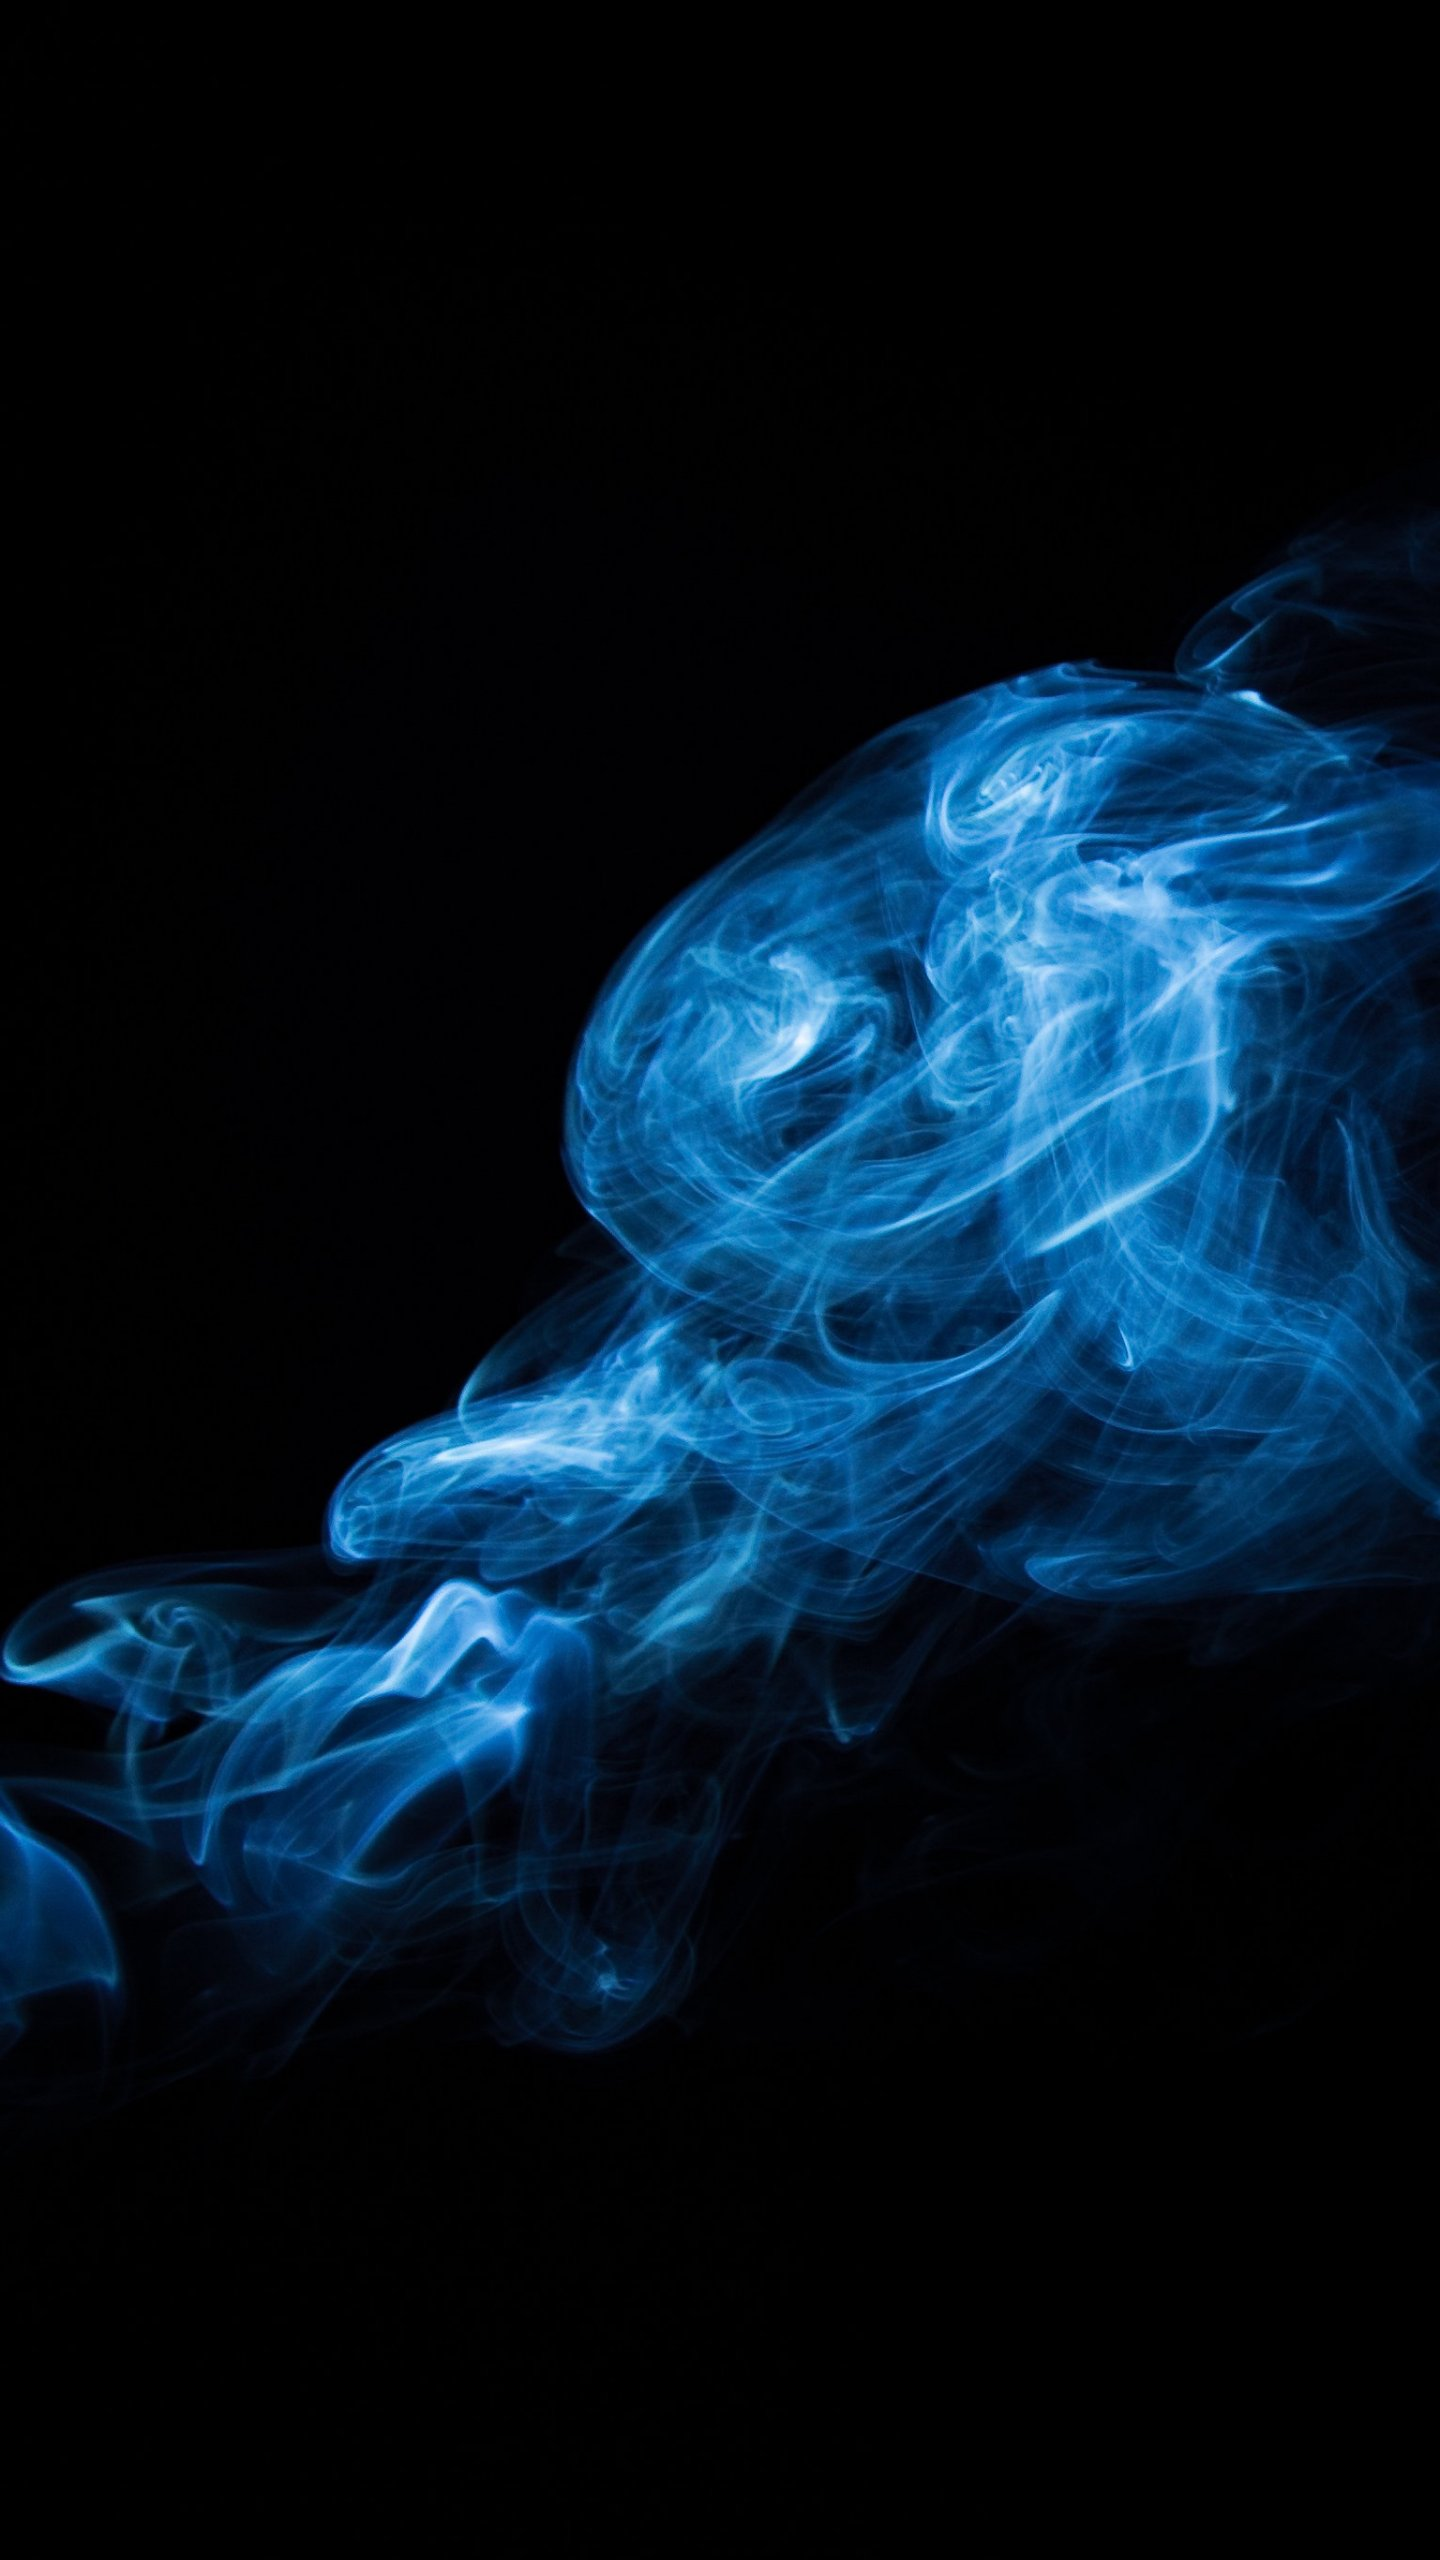 Blue Smoke Wallpaper IPhone Android & Desktop Backgrounds